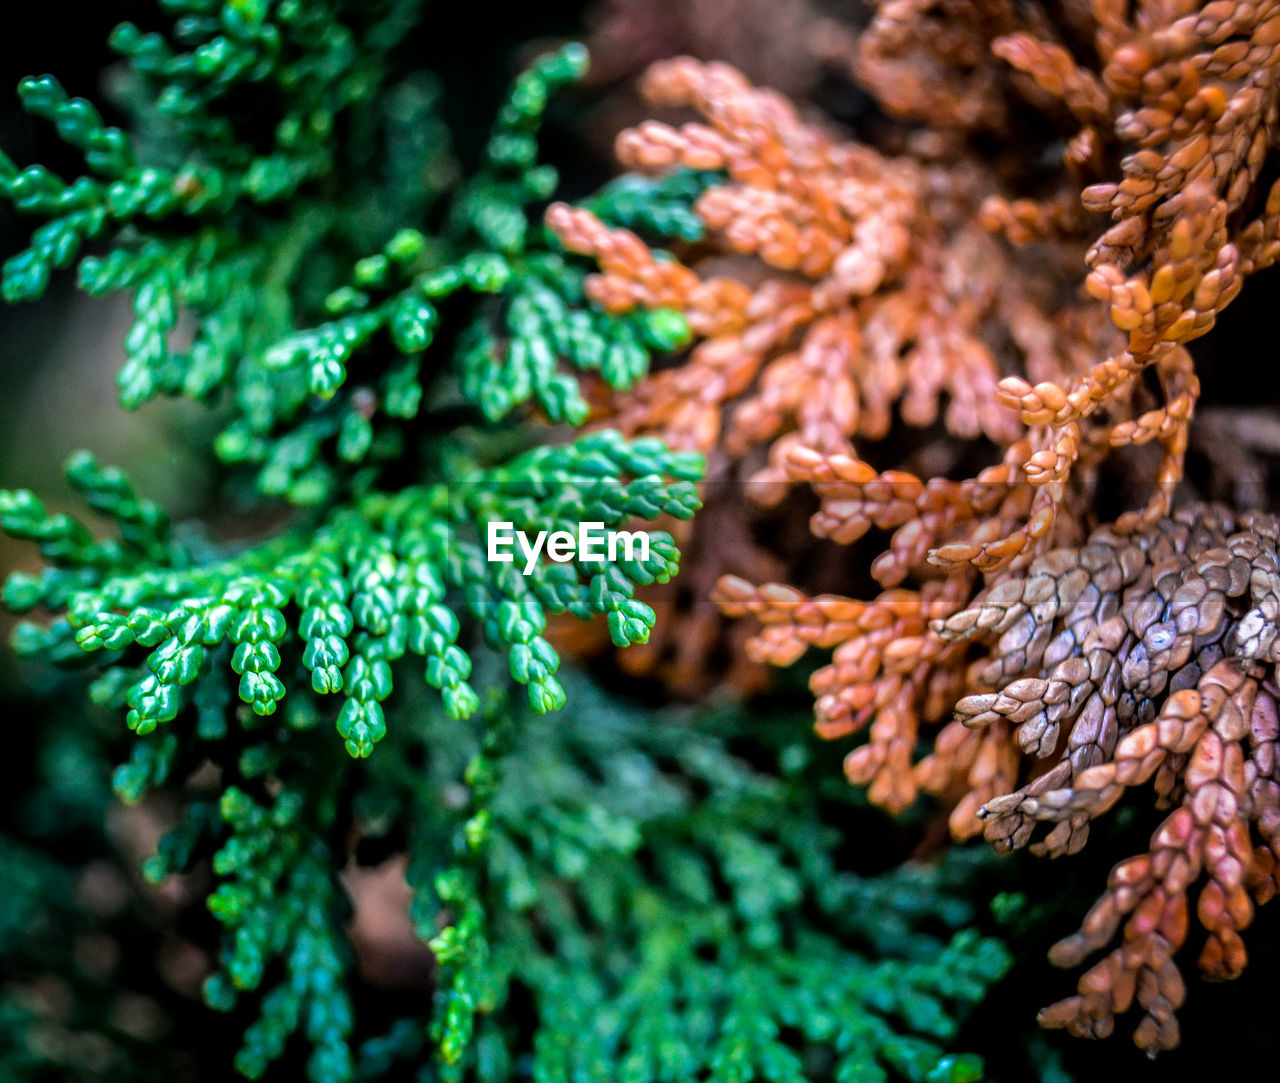 green color, close-up, selective focus, no people, plant, day, growth, nature, focus on foreground, beauty in nature, tree, pine tree, coniferous tree, outdoors, pinaceae, branch, needle - plant part, plant part, leaf, food, fir tree